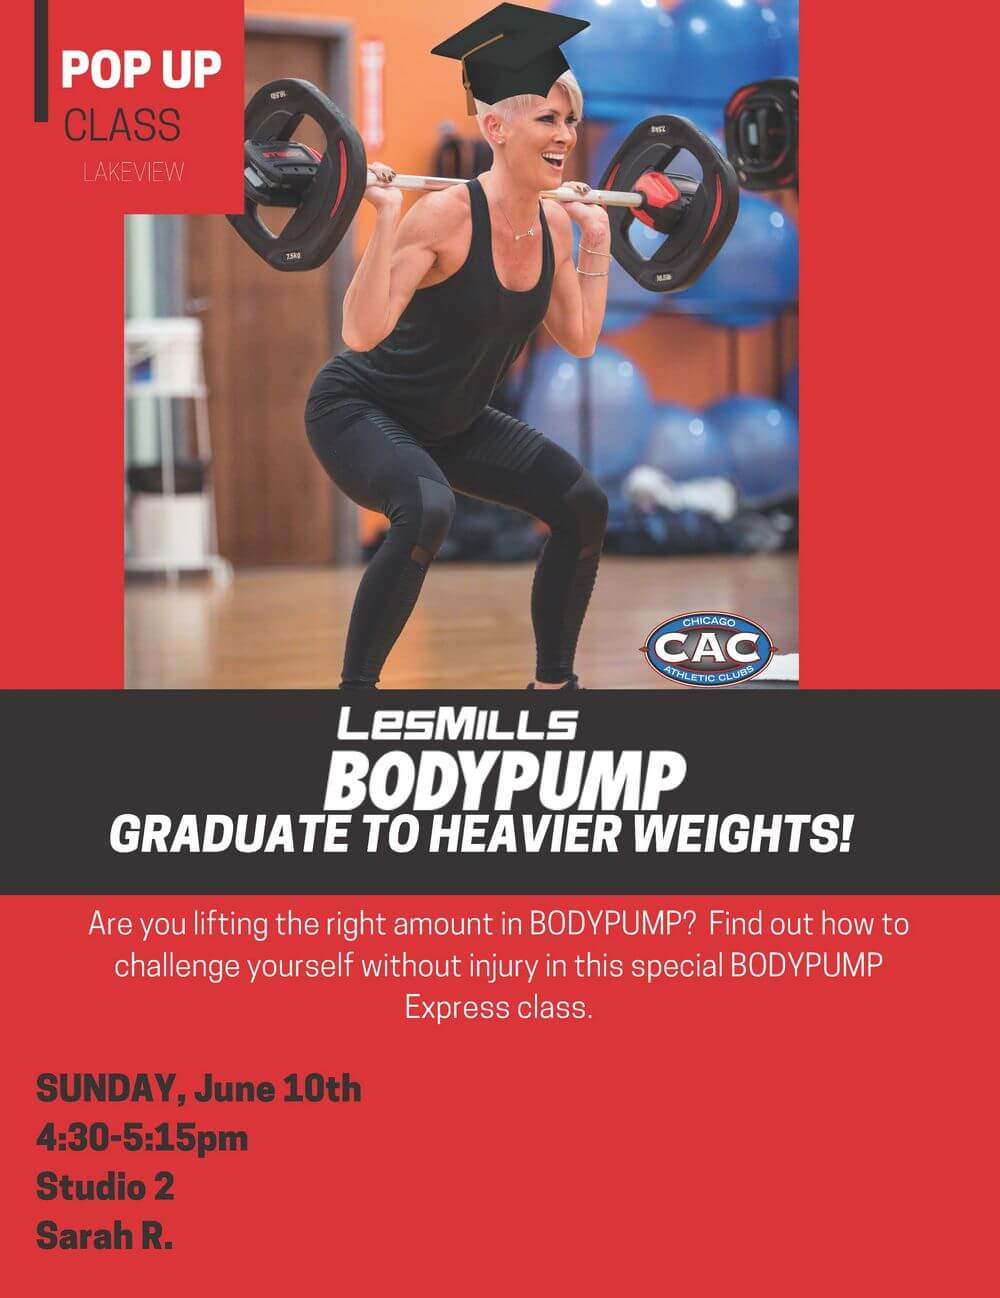 POP UP Bodypump Graduate LVAC